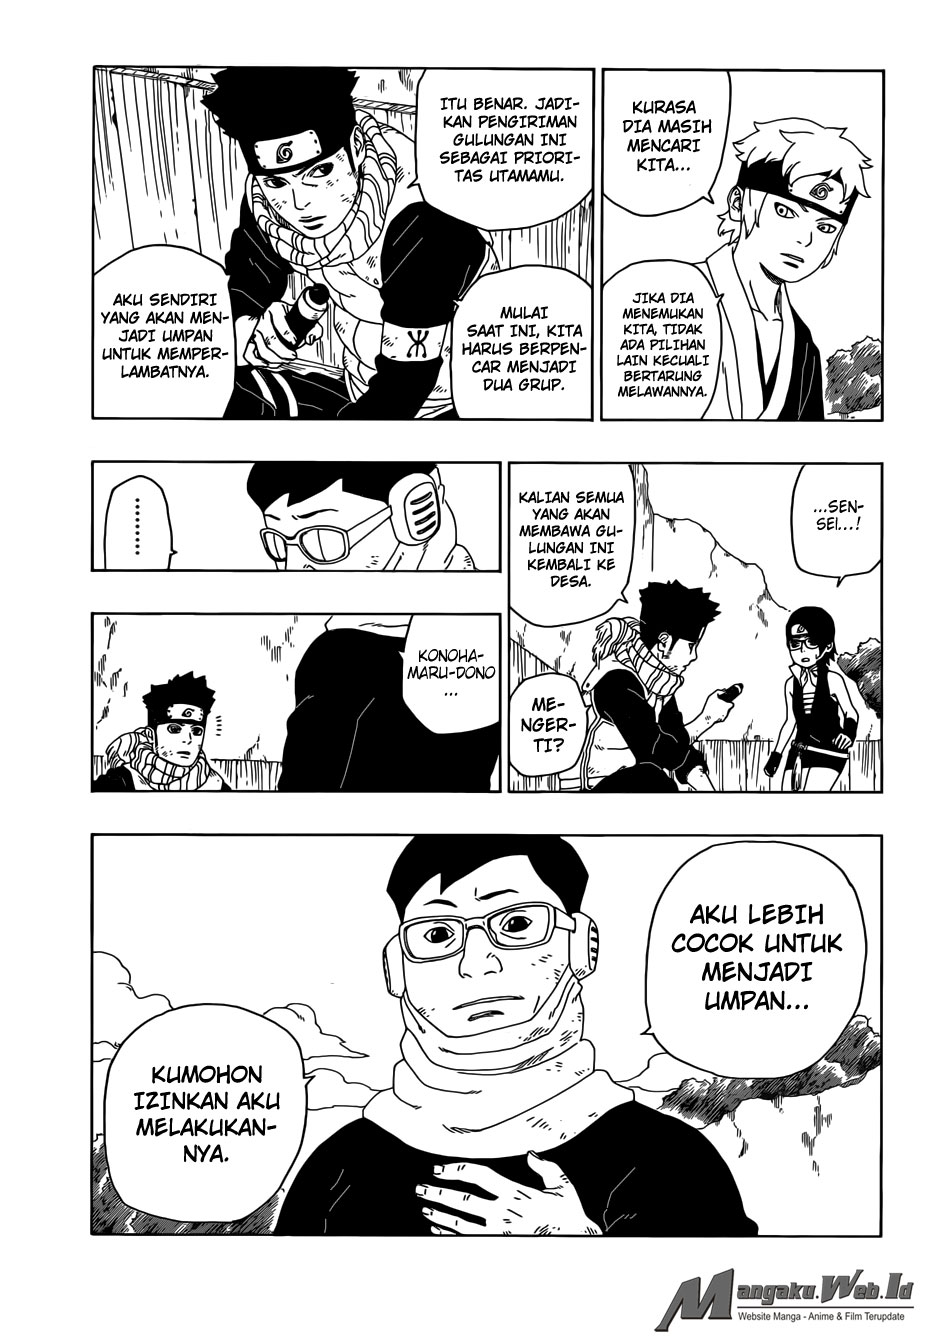 Baca Manga Boruto Chapter 20 Bahasa Indonesia